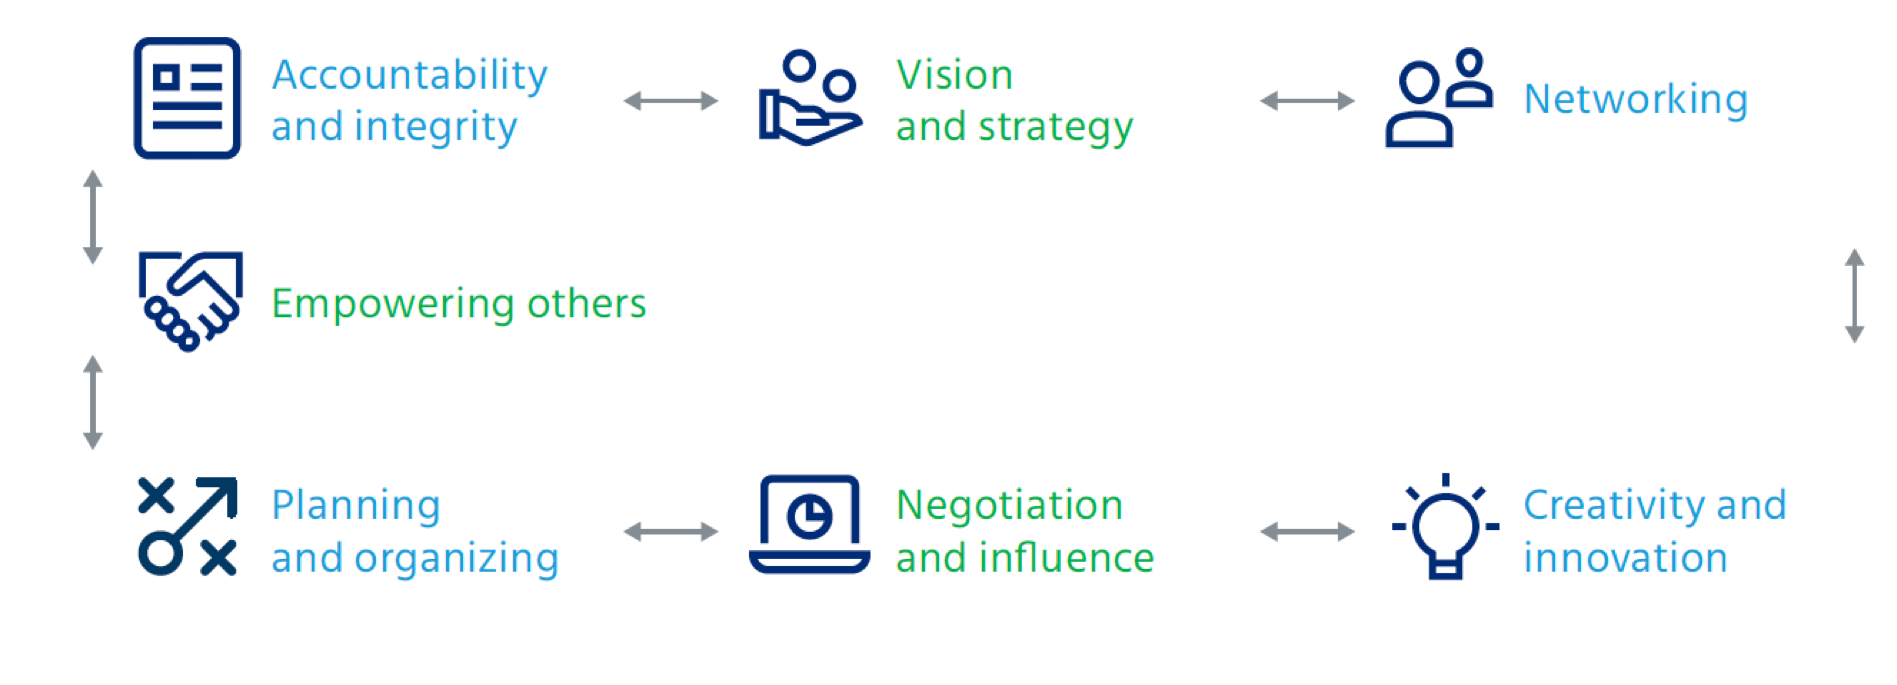 Use a specific competency framework when using a 360 survey template for leadership roles